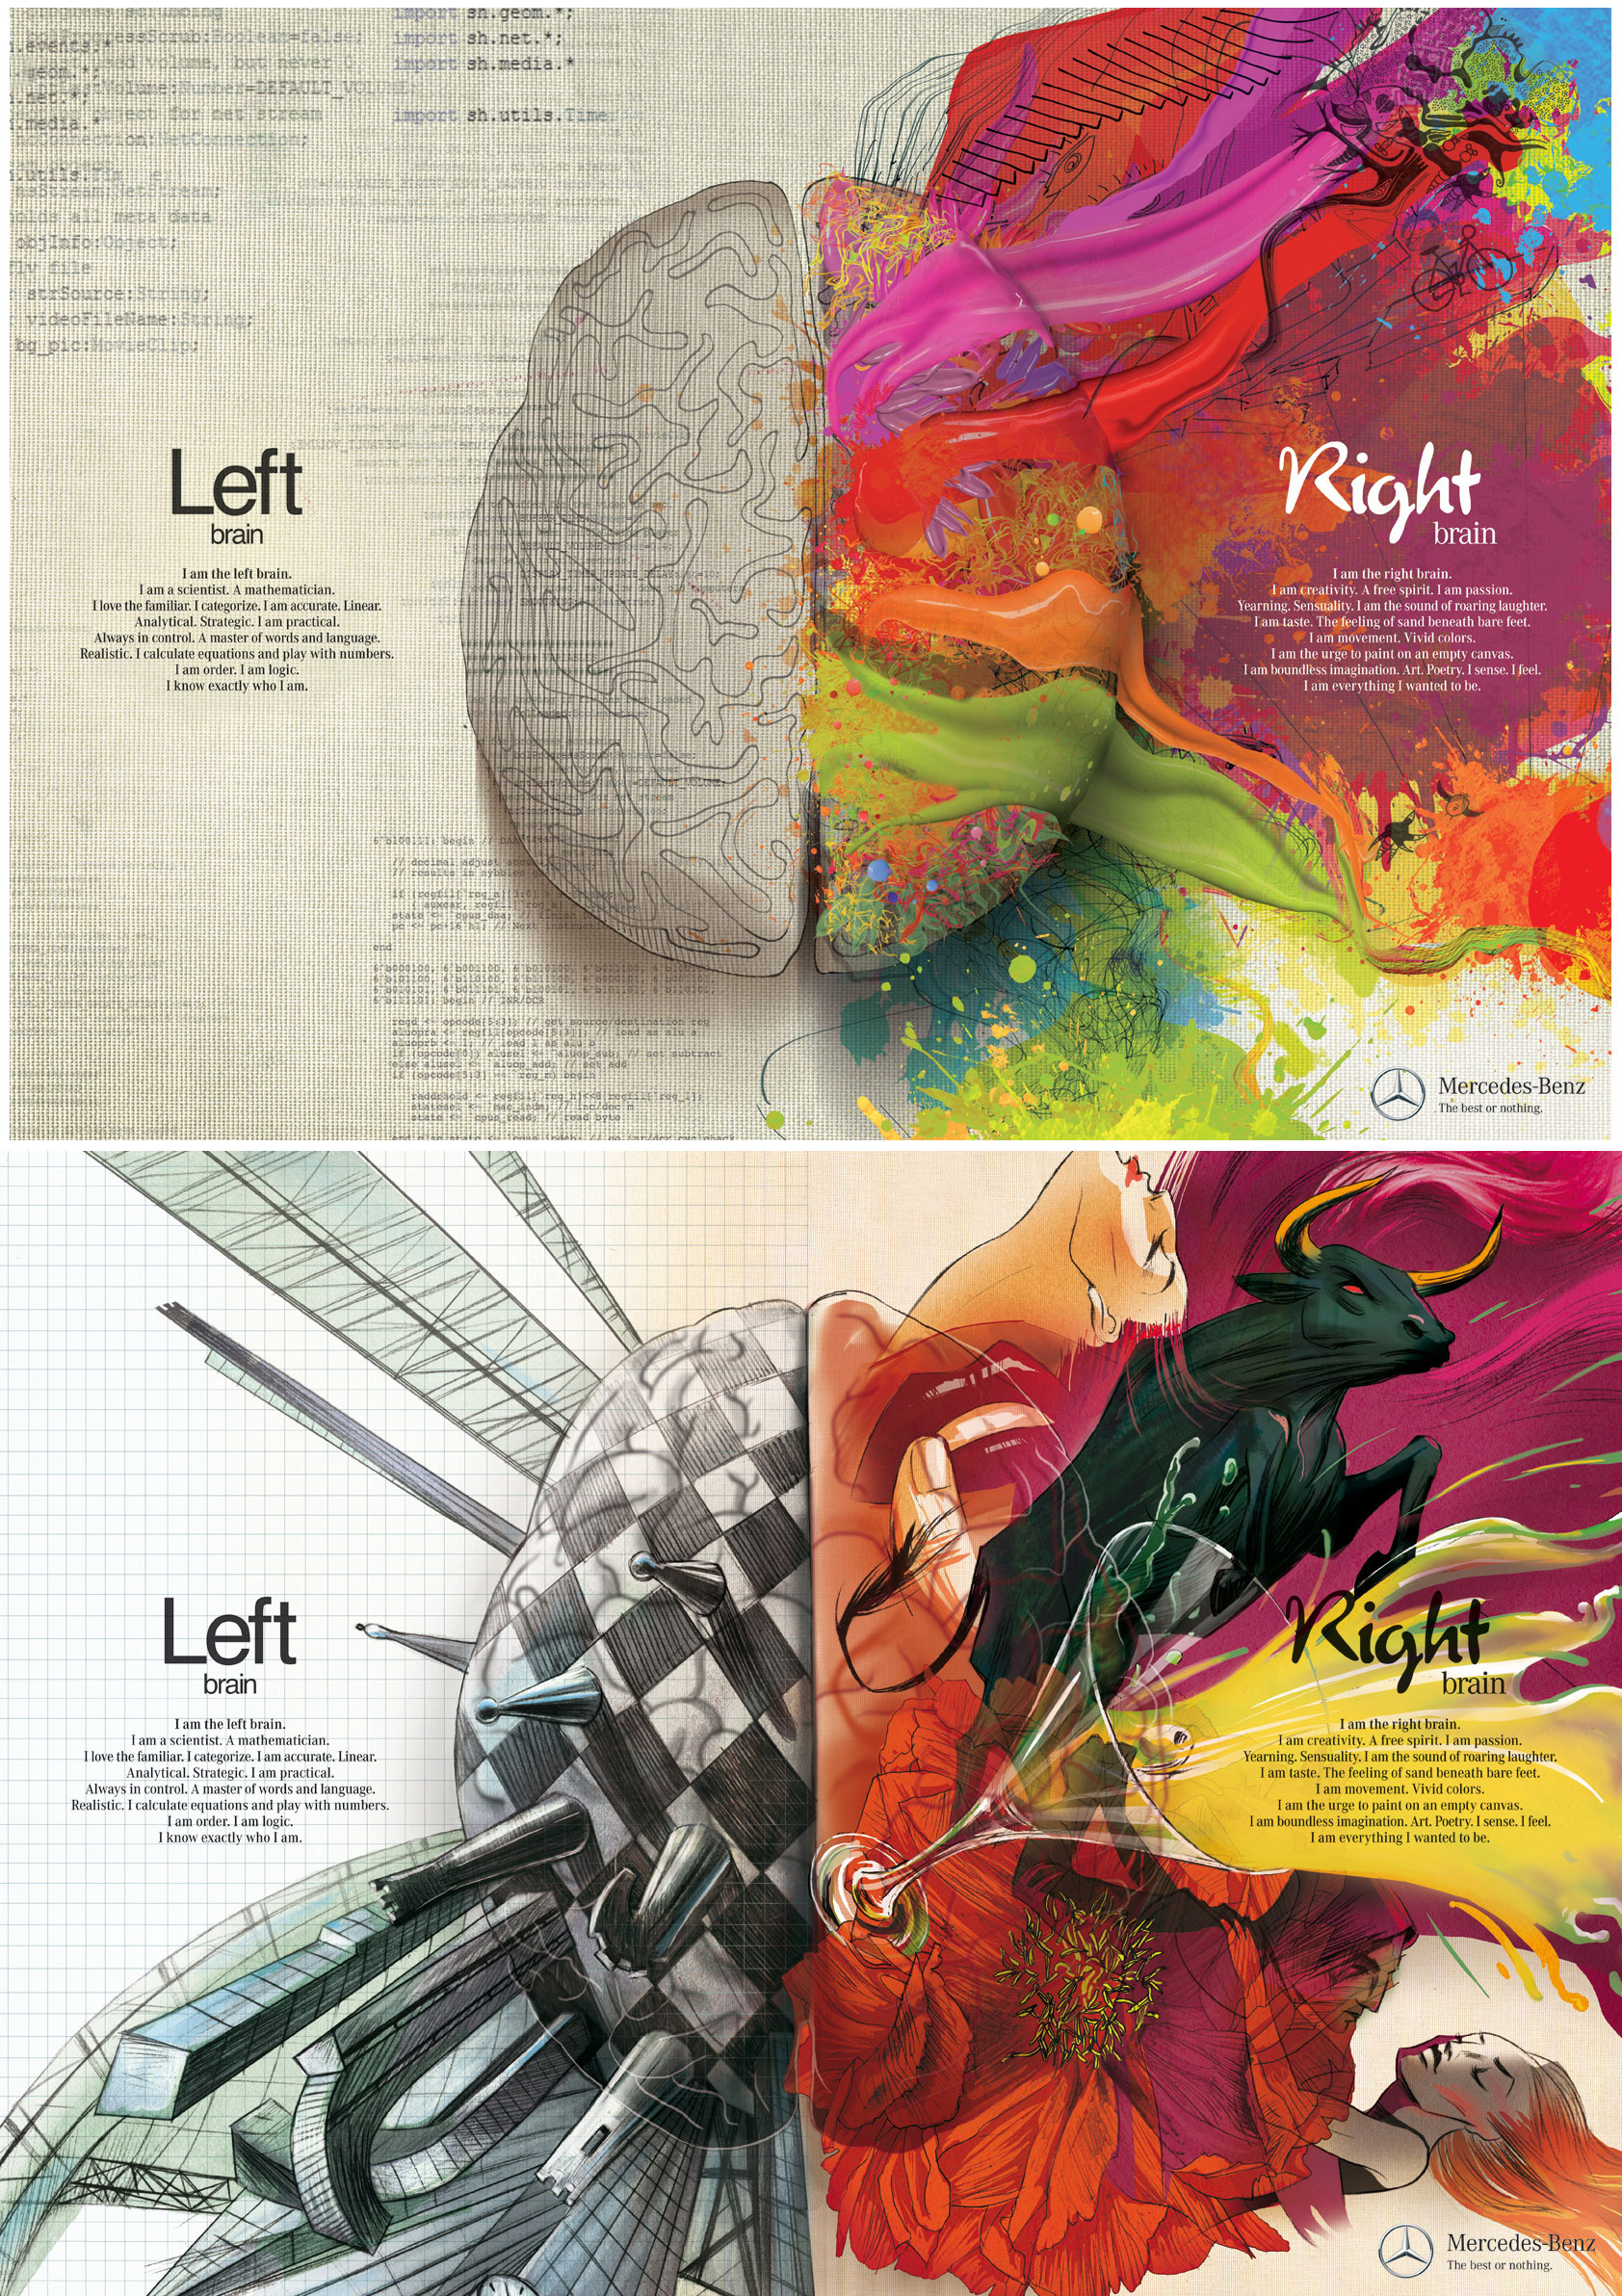 mercedes_left-brain-right-brain